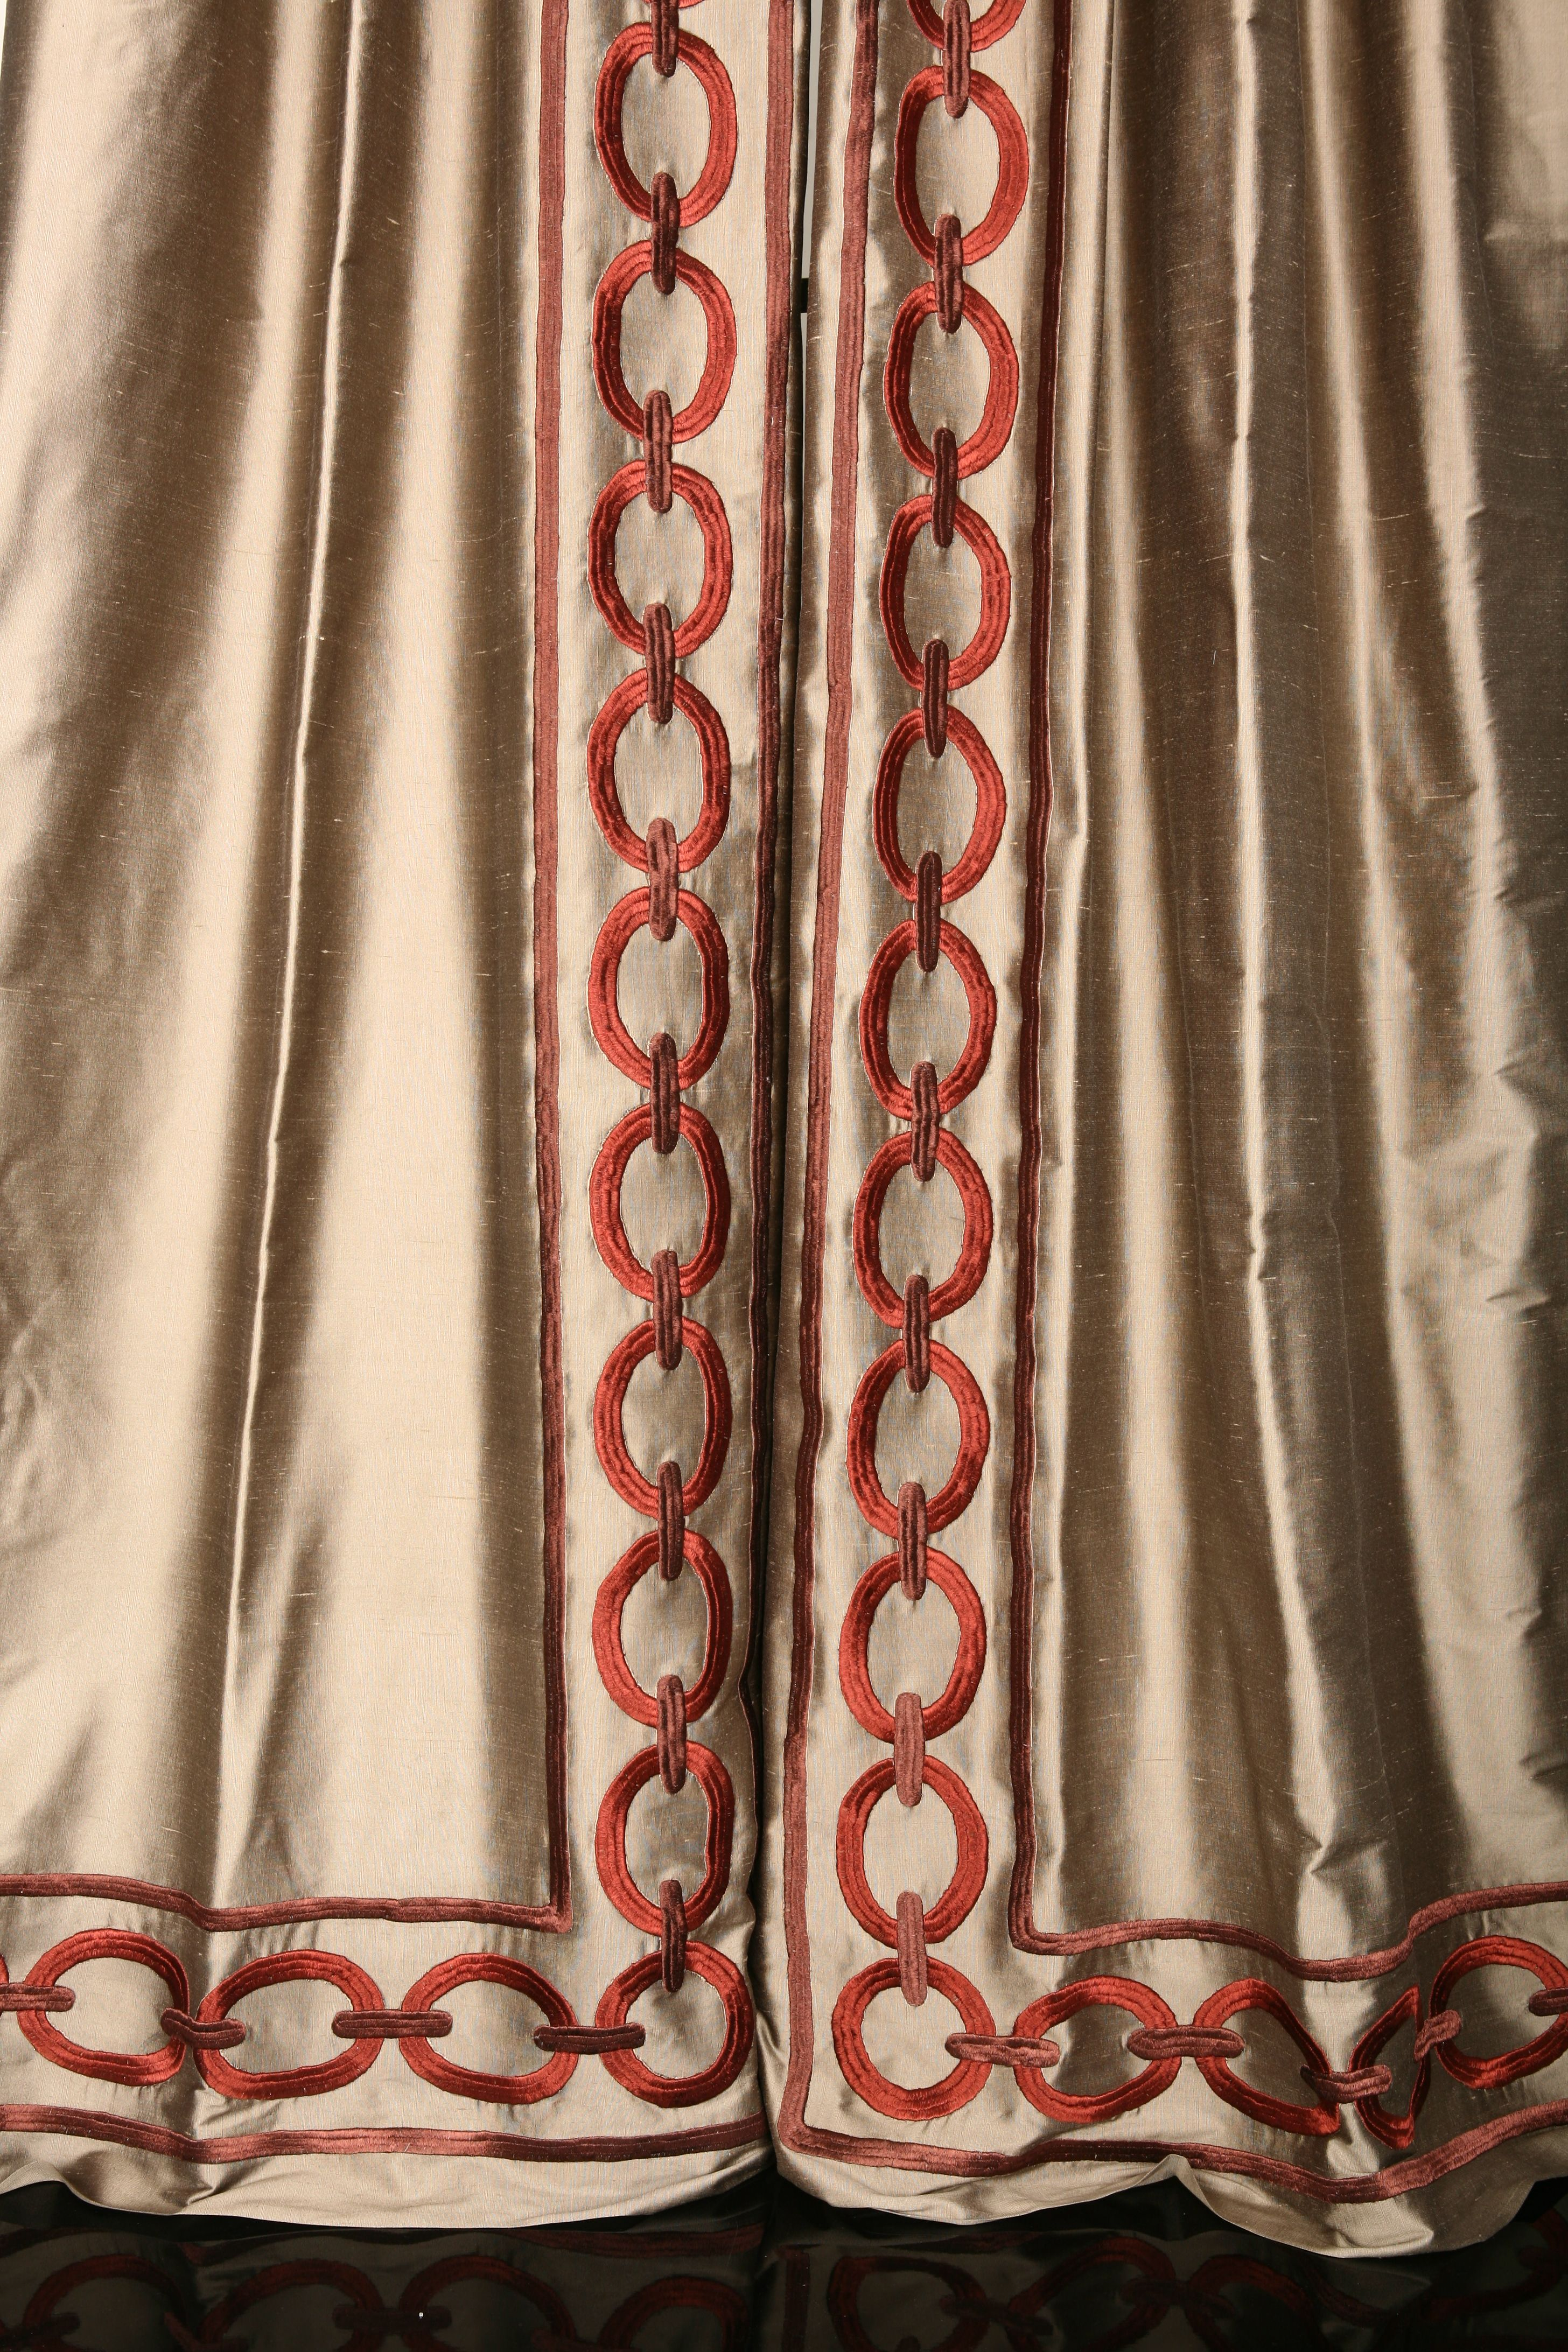 Embroidery Chain Link Design On Leading Edge Of Drapery Window Treatments Curtains